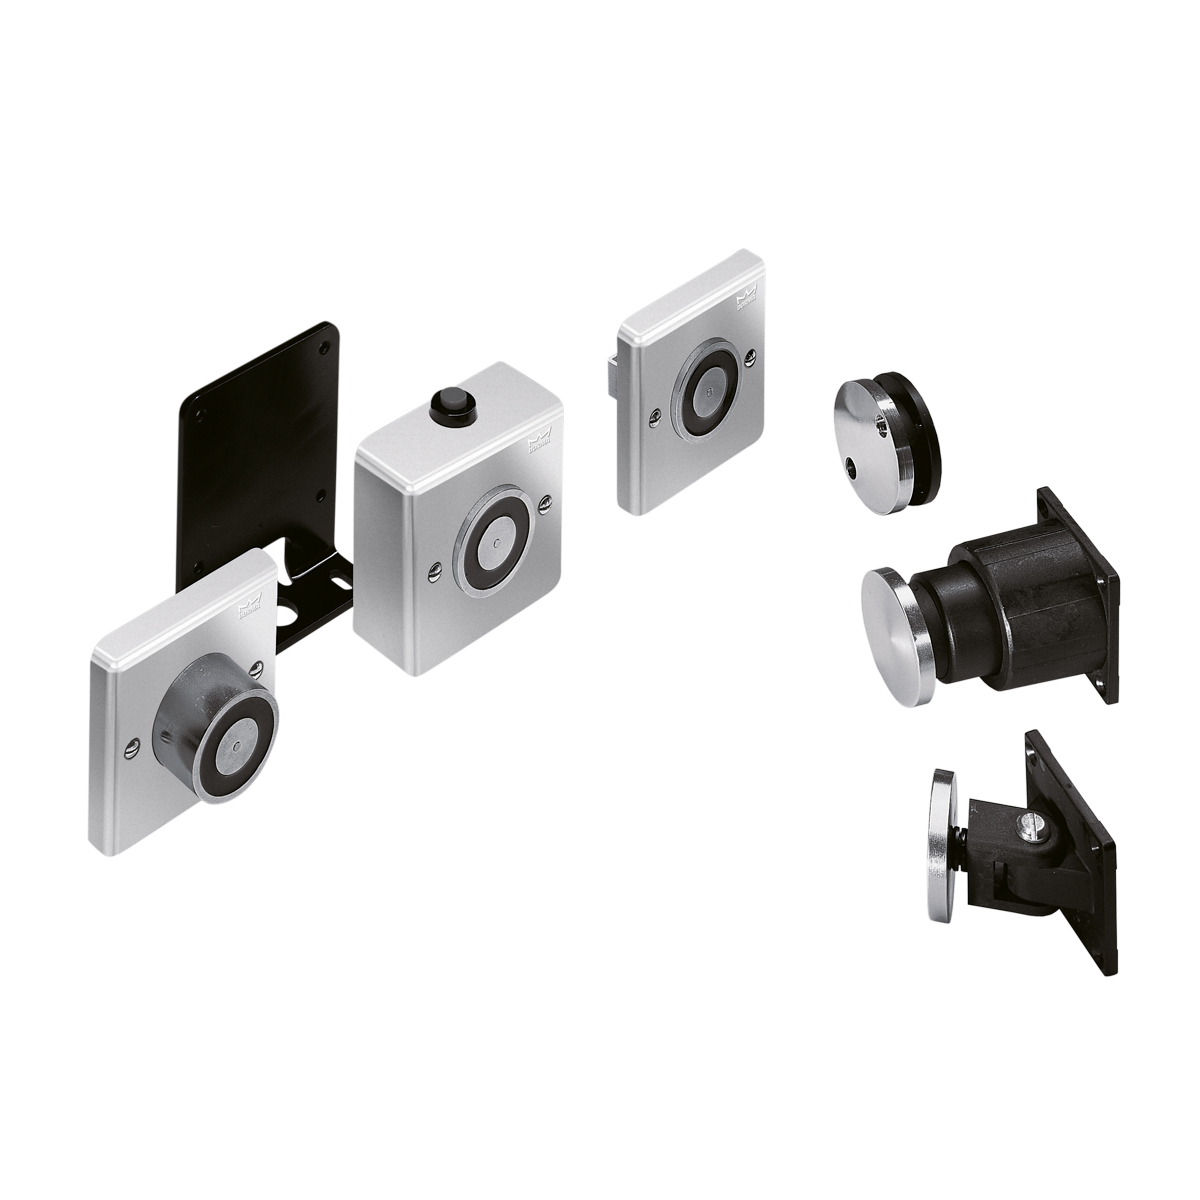 Dorma Em Series Hold Open Magnets Mighty Mule Wiring Diagram Magnete 054538 1200x1200